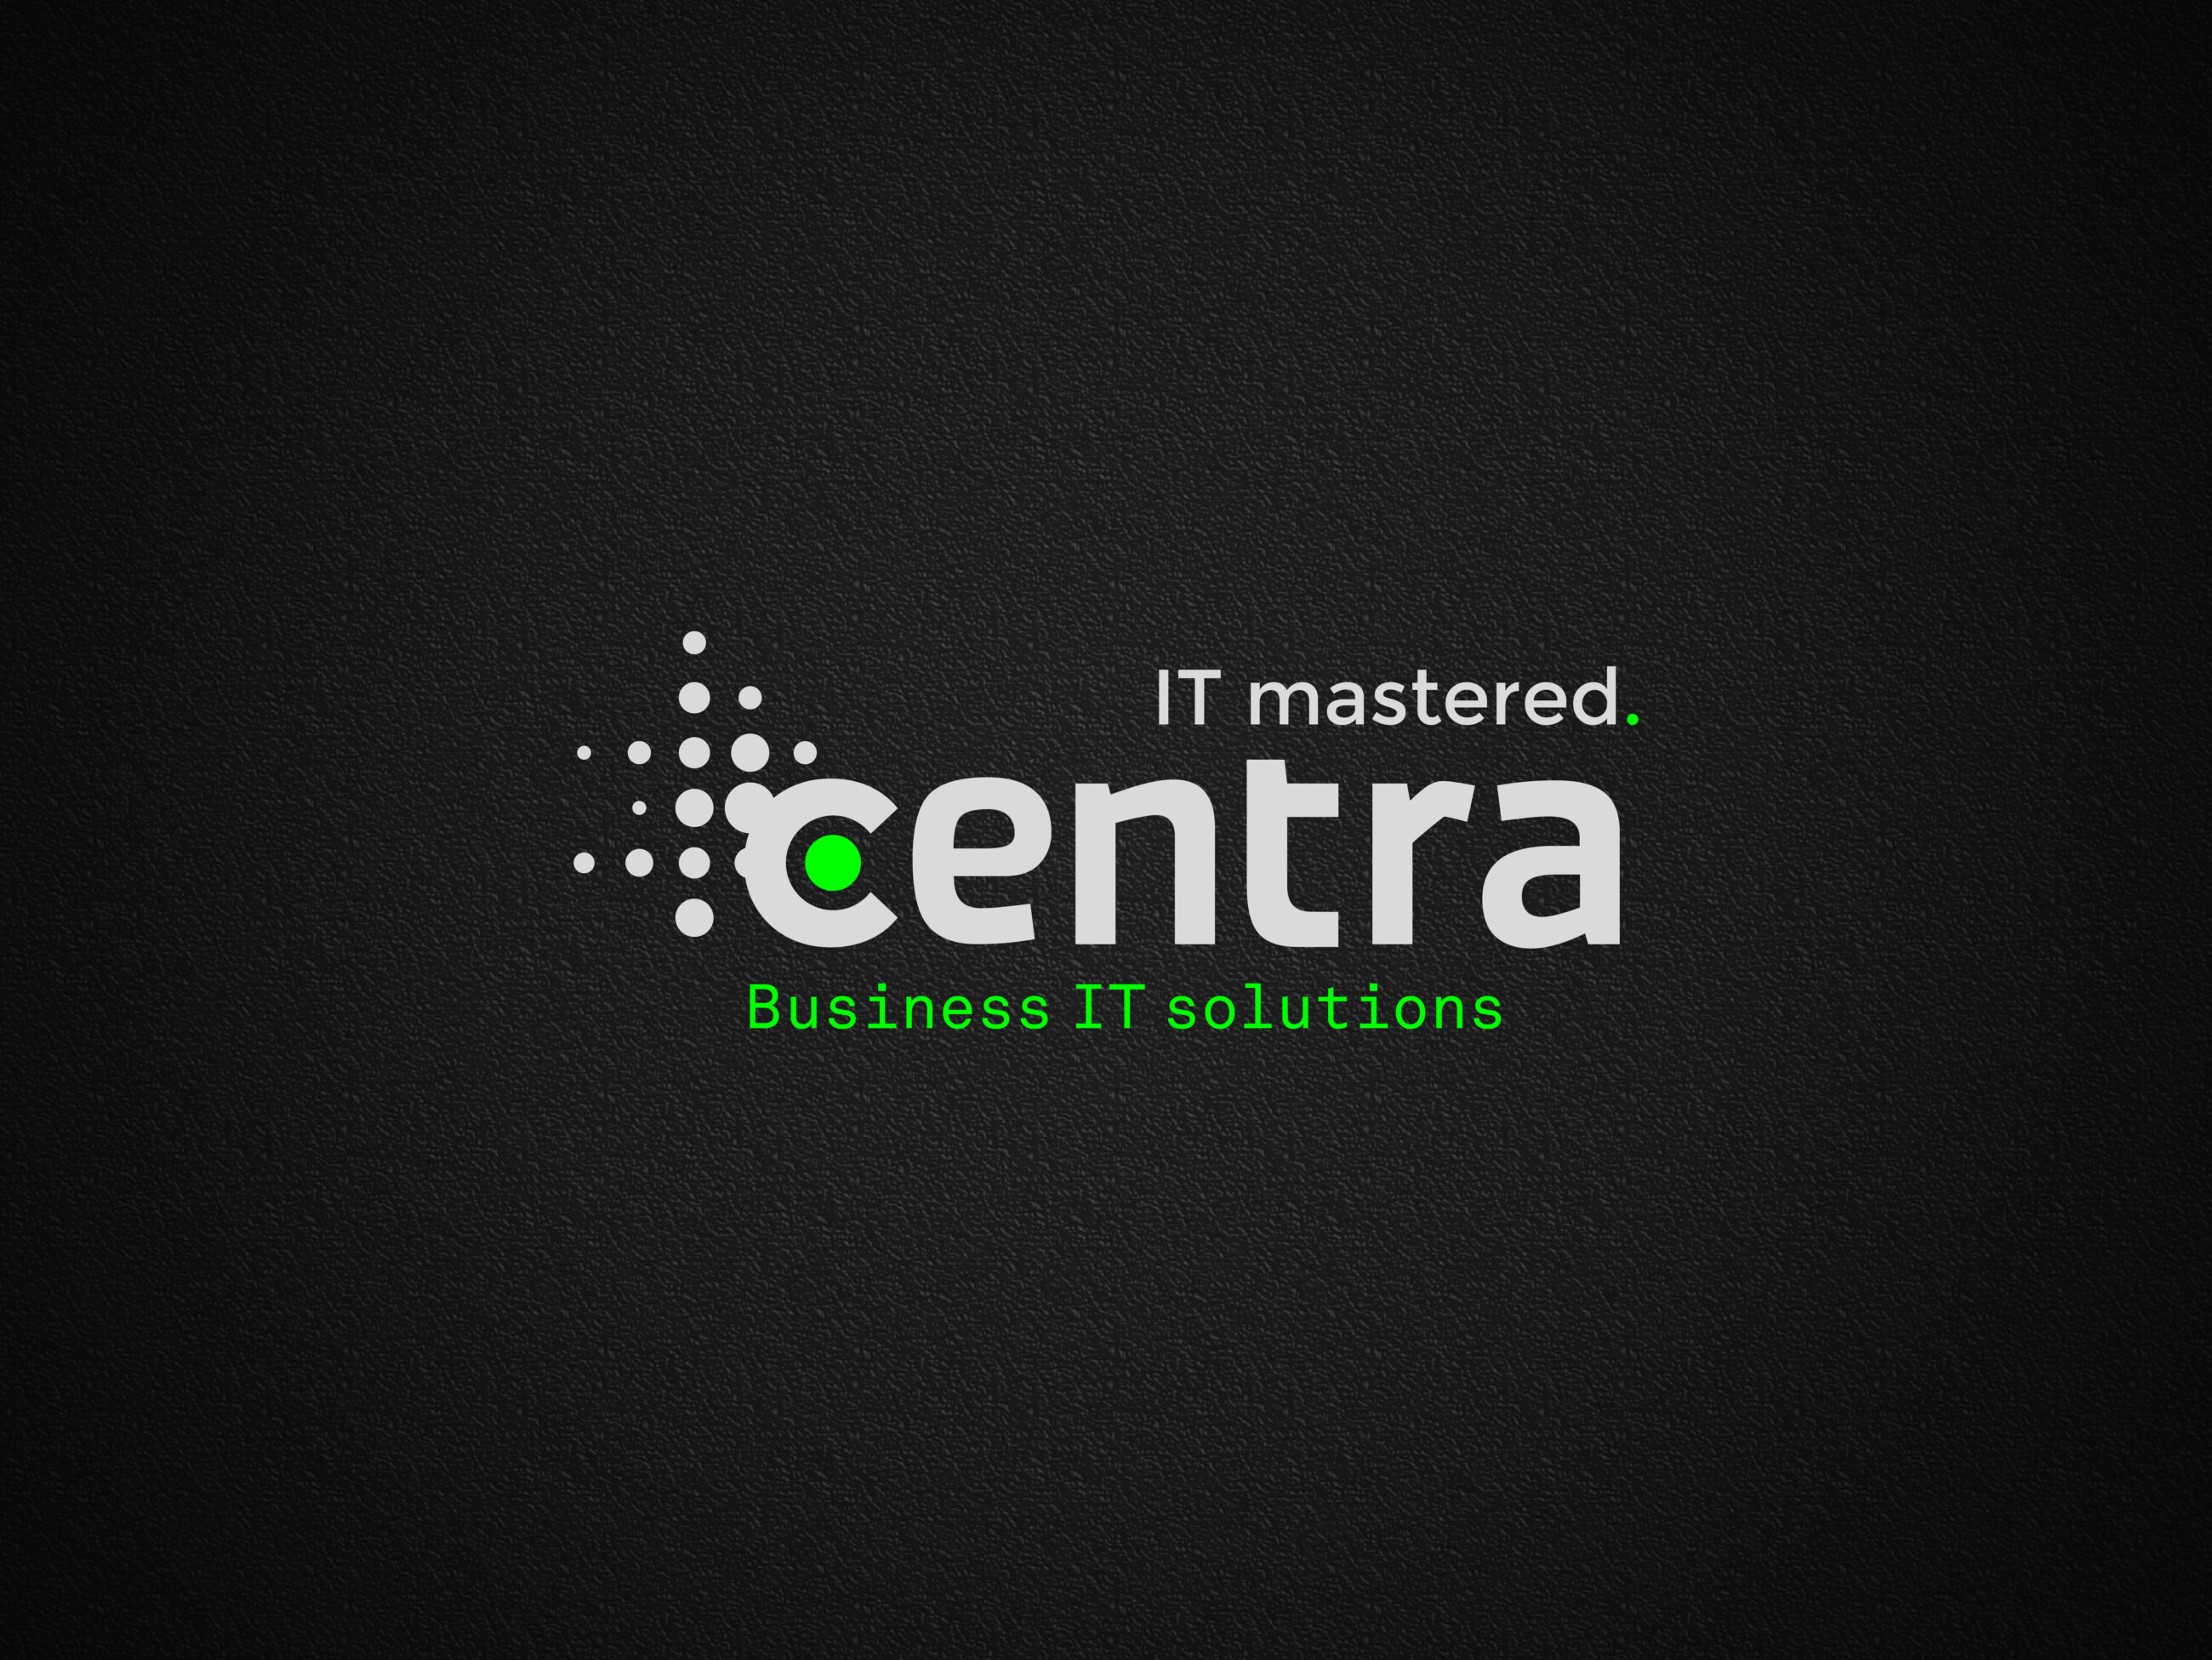 Centra IT Mastered - Business IT Solutions Web Banner